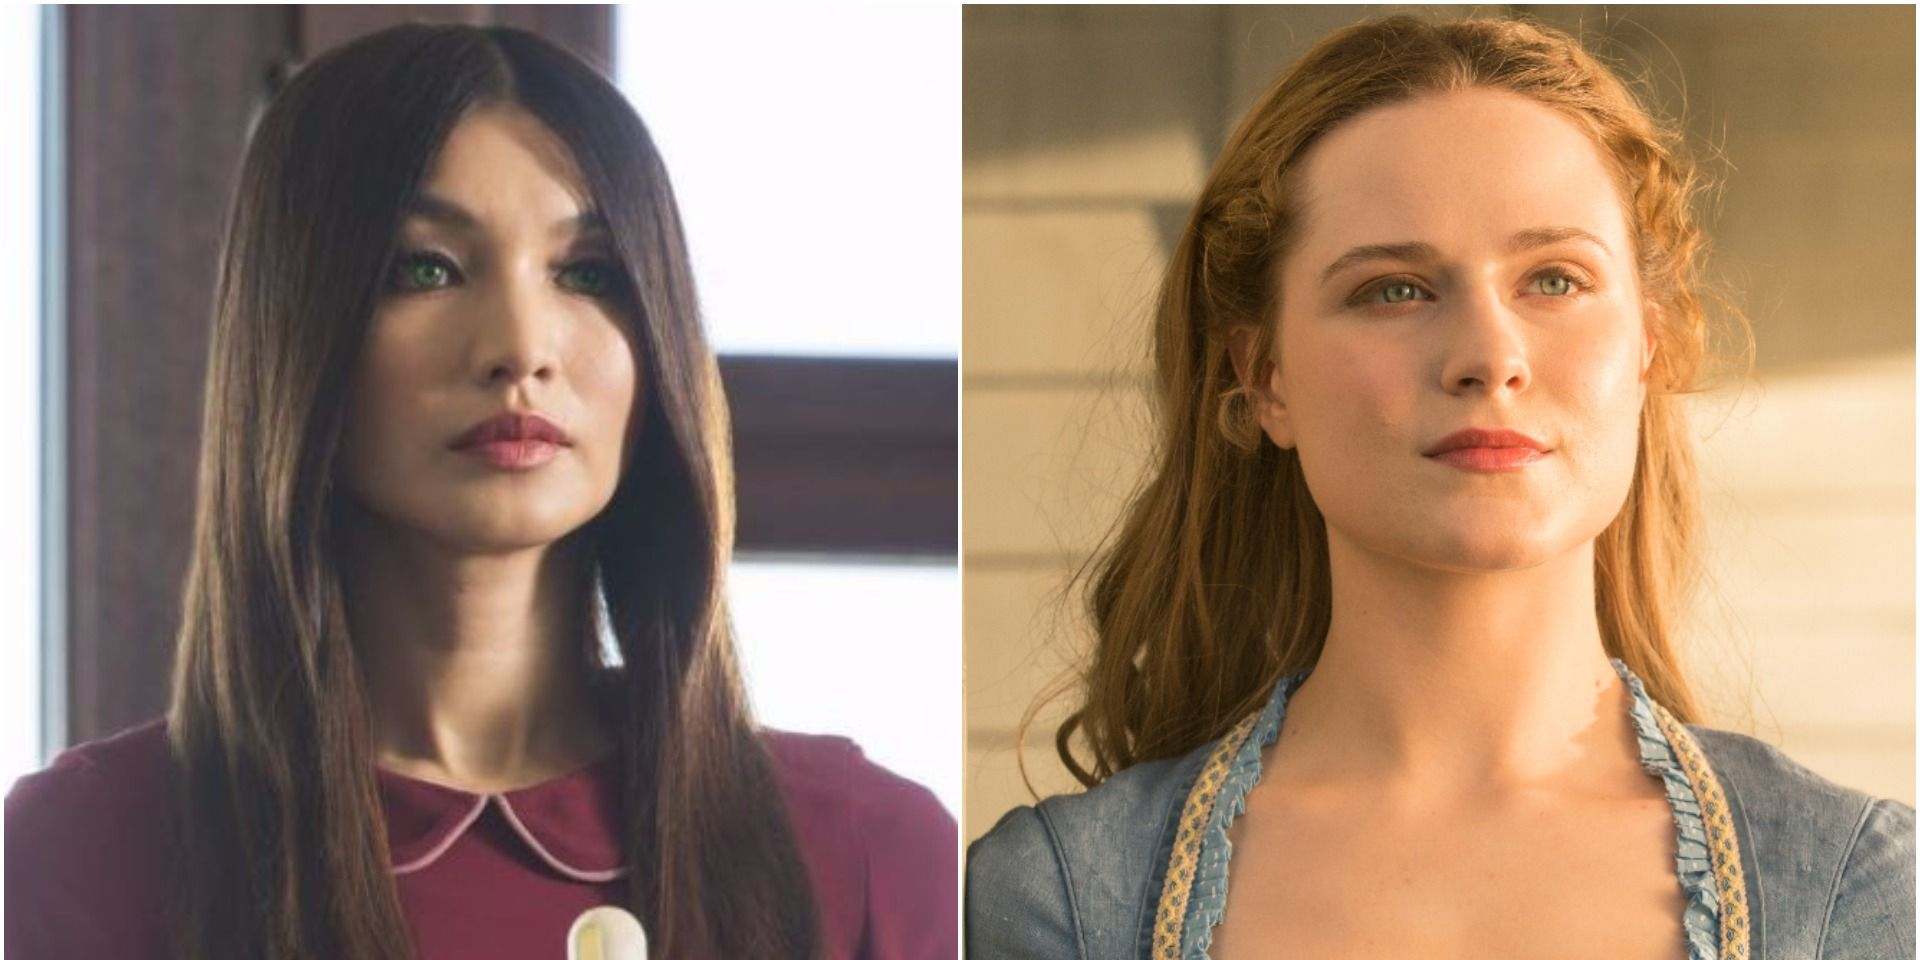 Gemma Chan in Channel 4's Humans, Evan Rachel Wood in HBO's Westworld